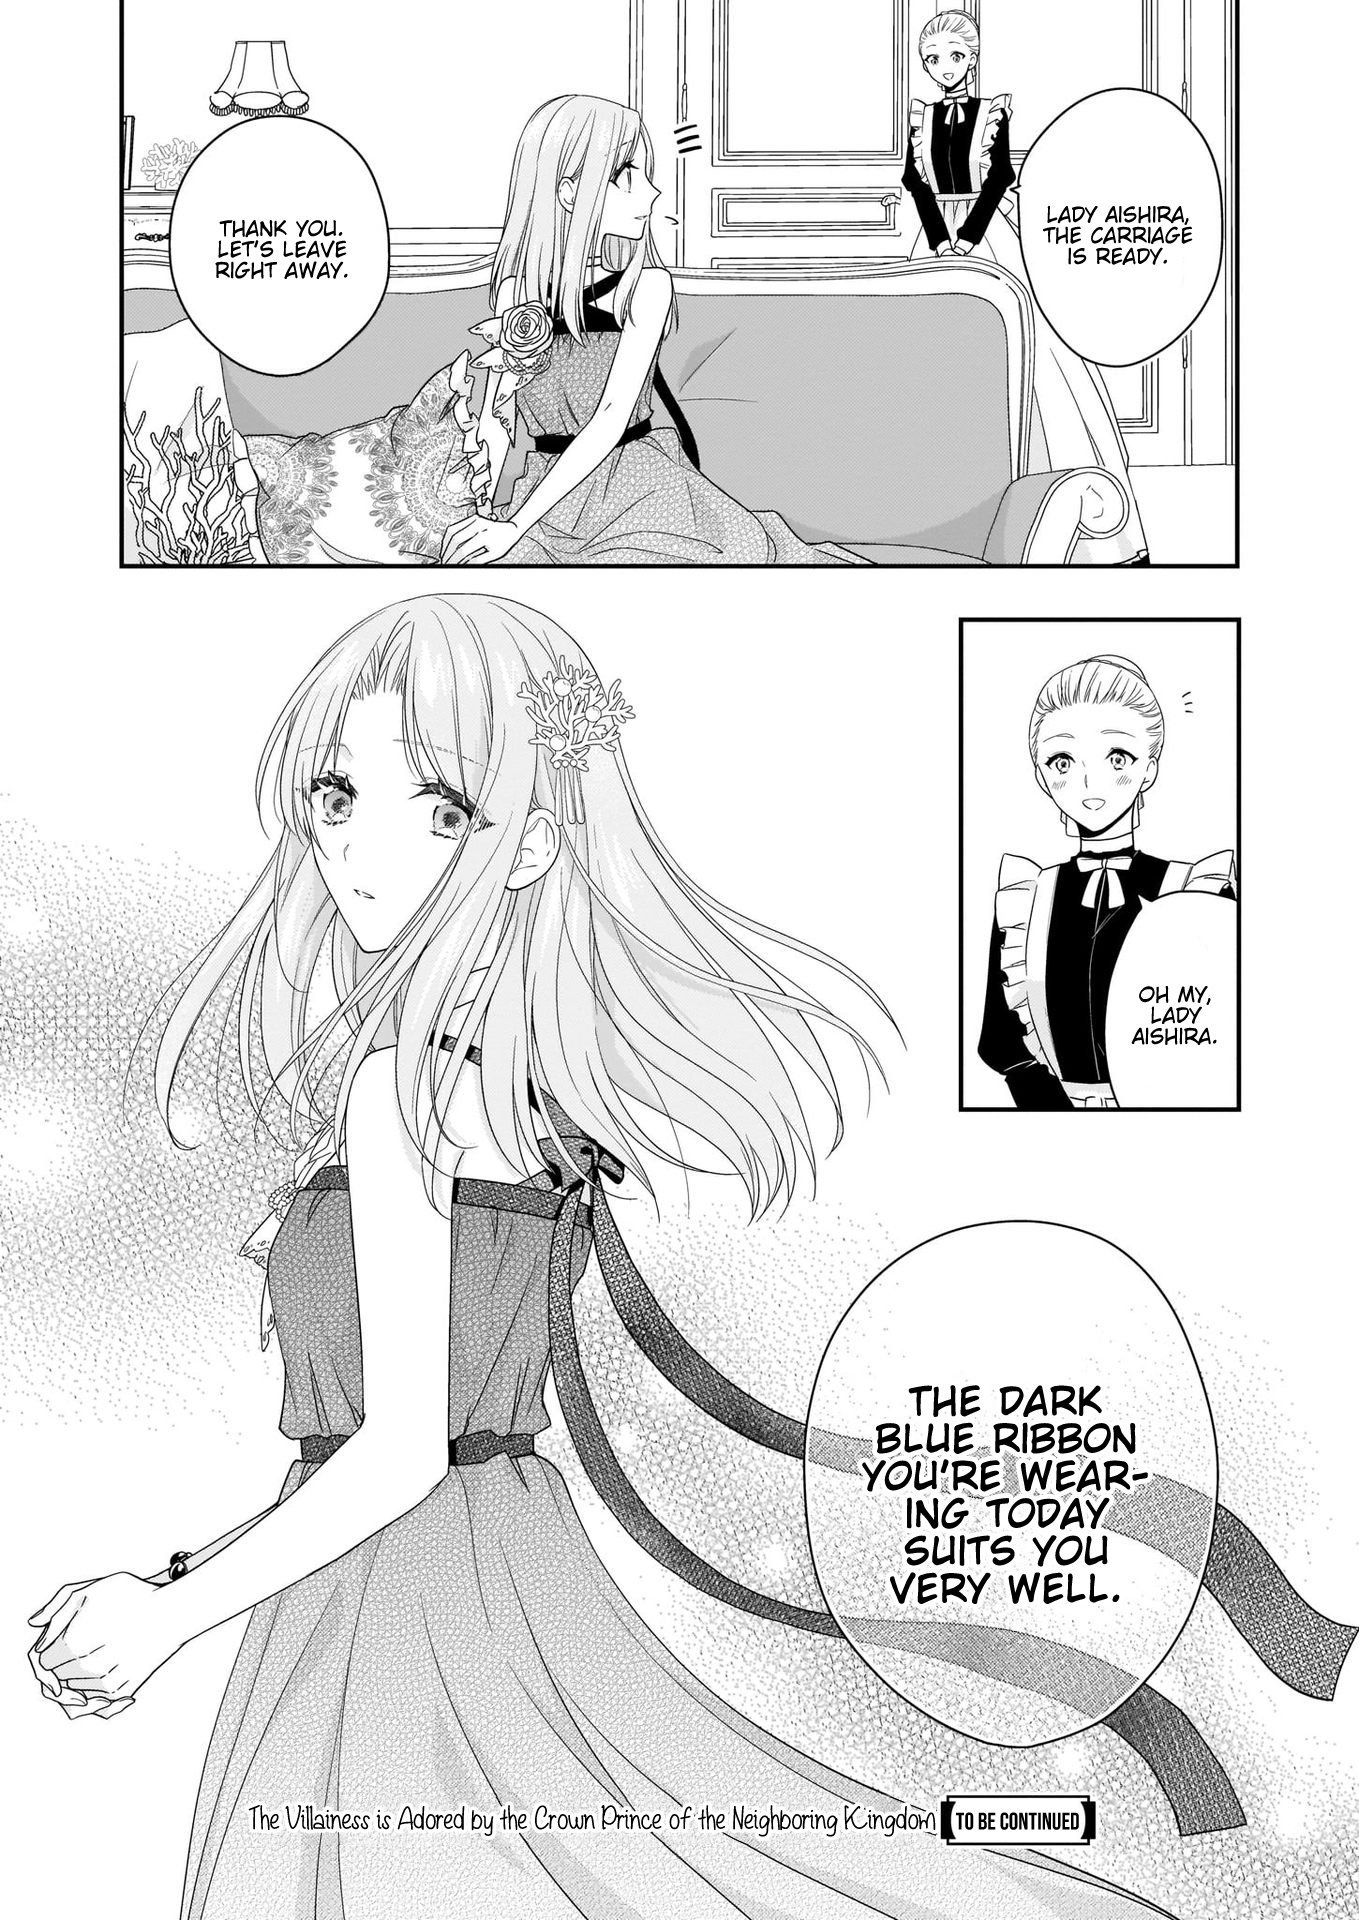 Manga The Villainess Is Adored by the Crown Prince of the Neighboring Kingdom - Chapter 23 Page 25